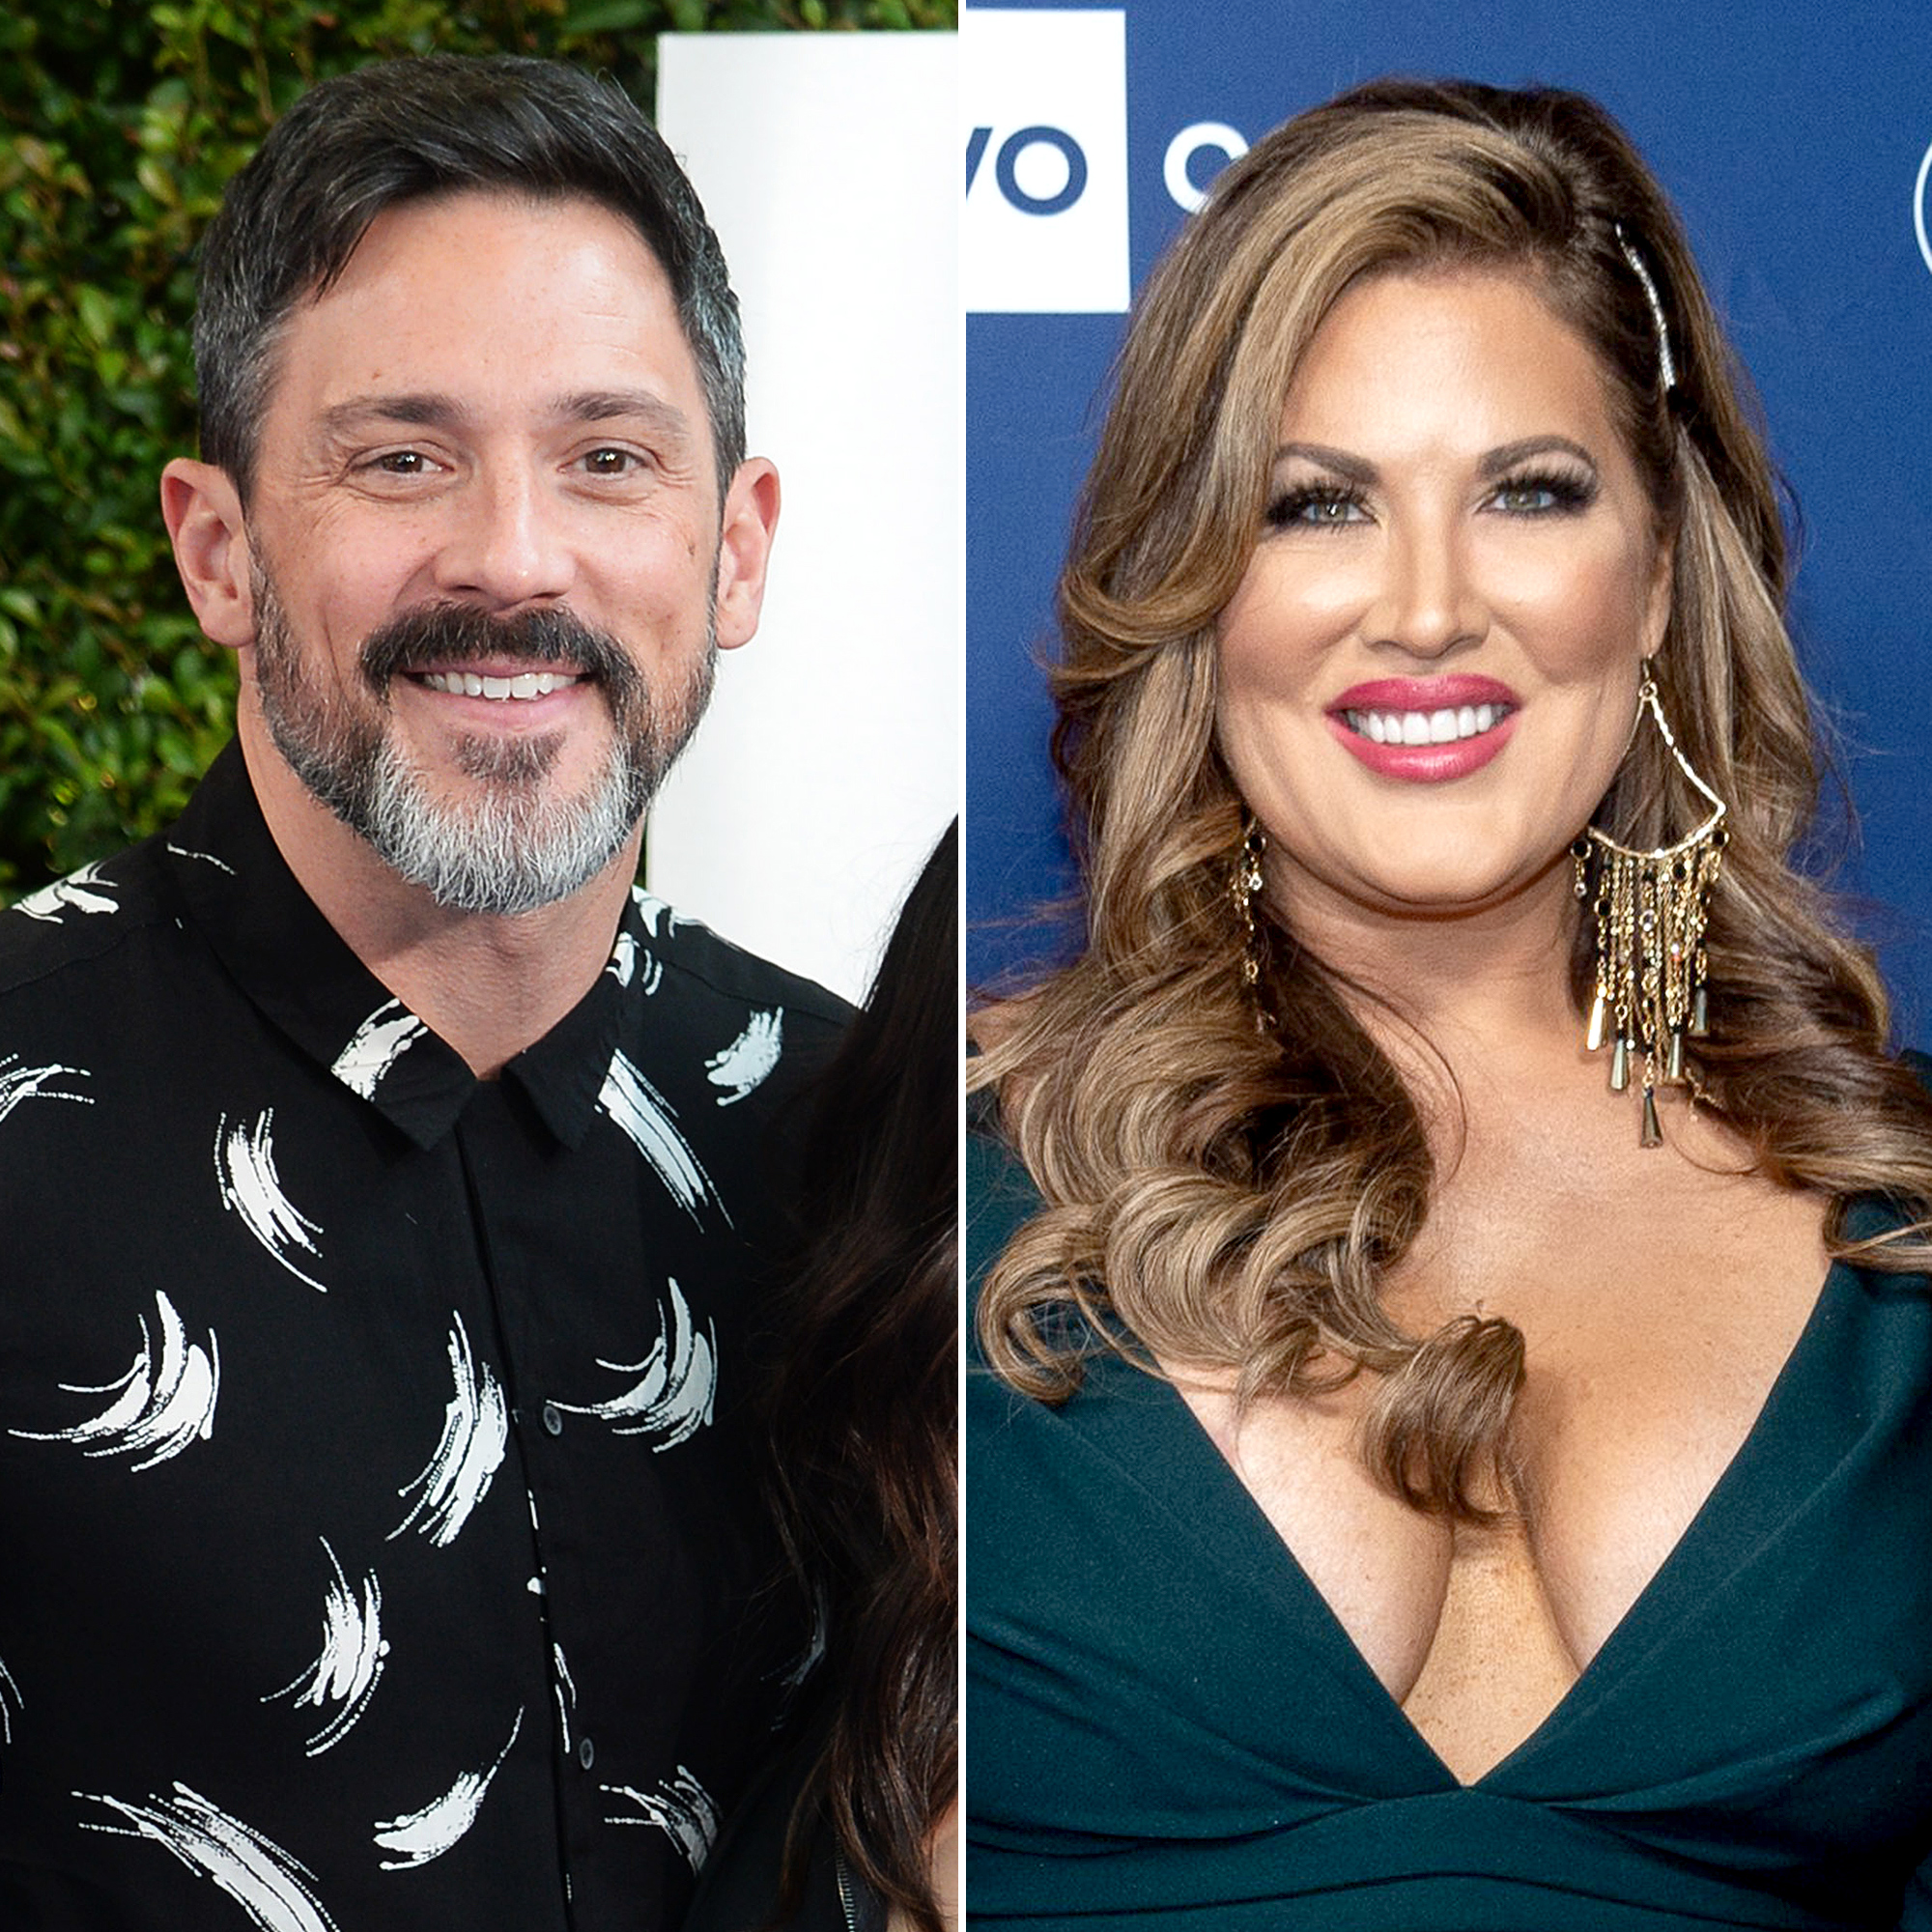 Steve Kazee, Emily Simpson, More Stars Who Have Lost Weight in Quarantine